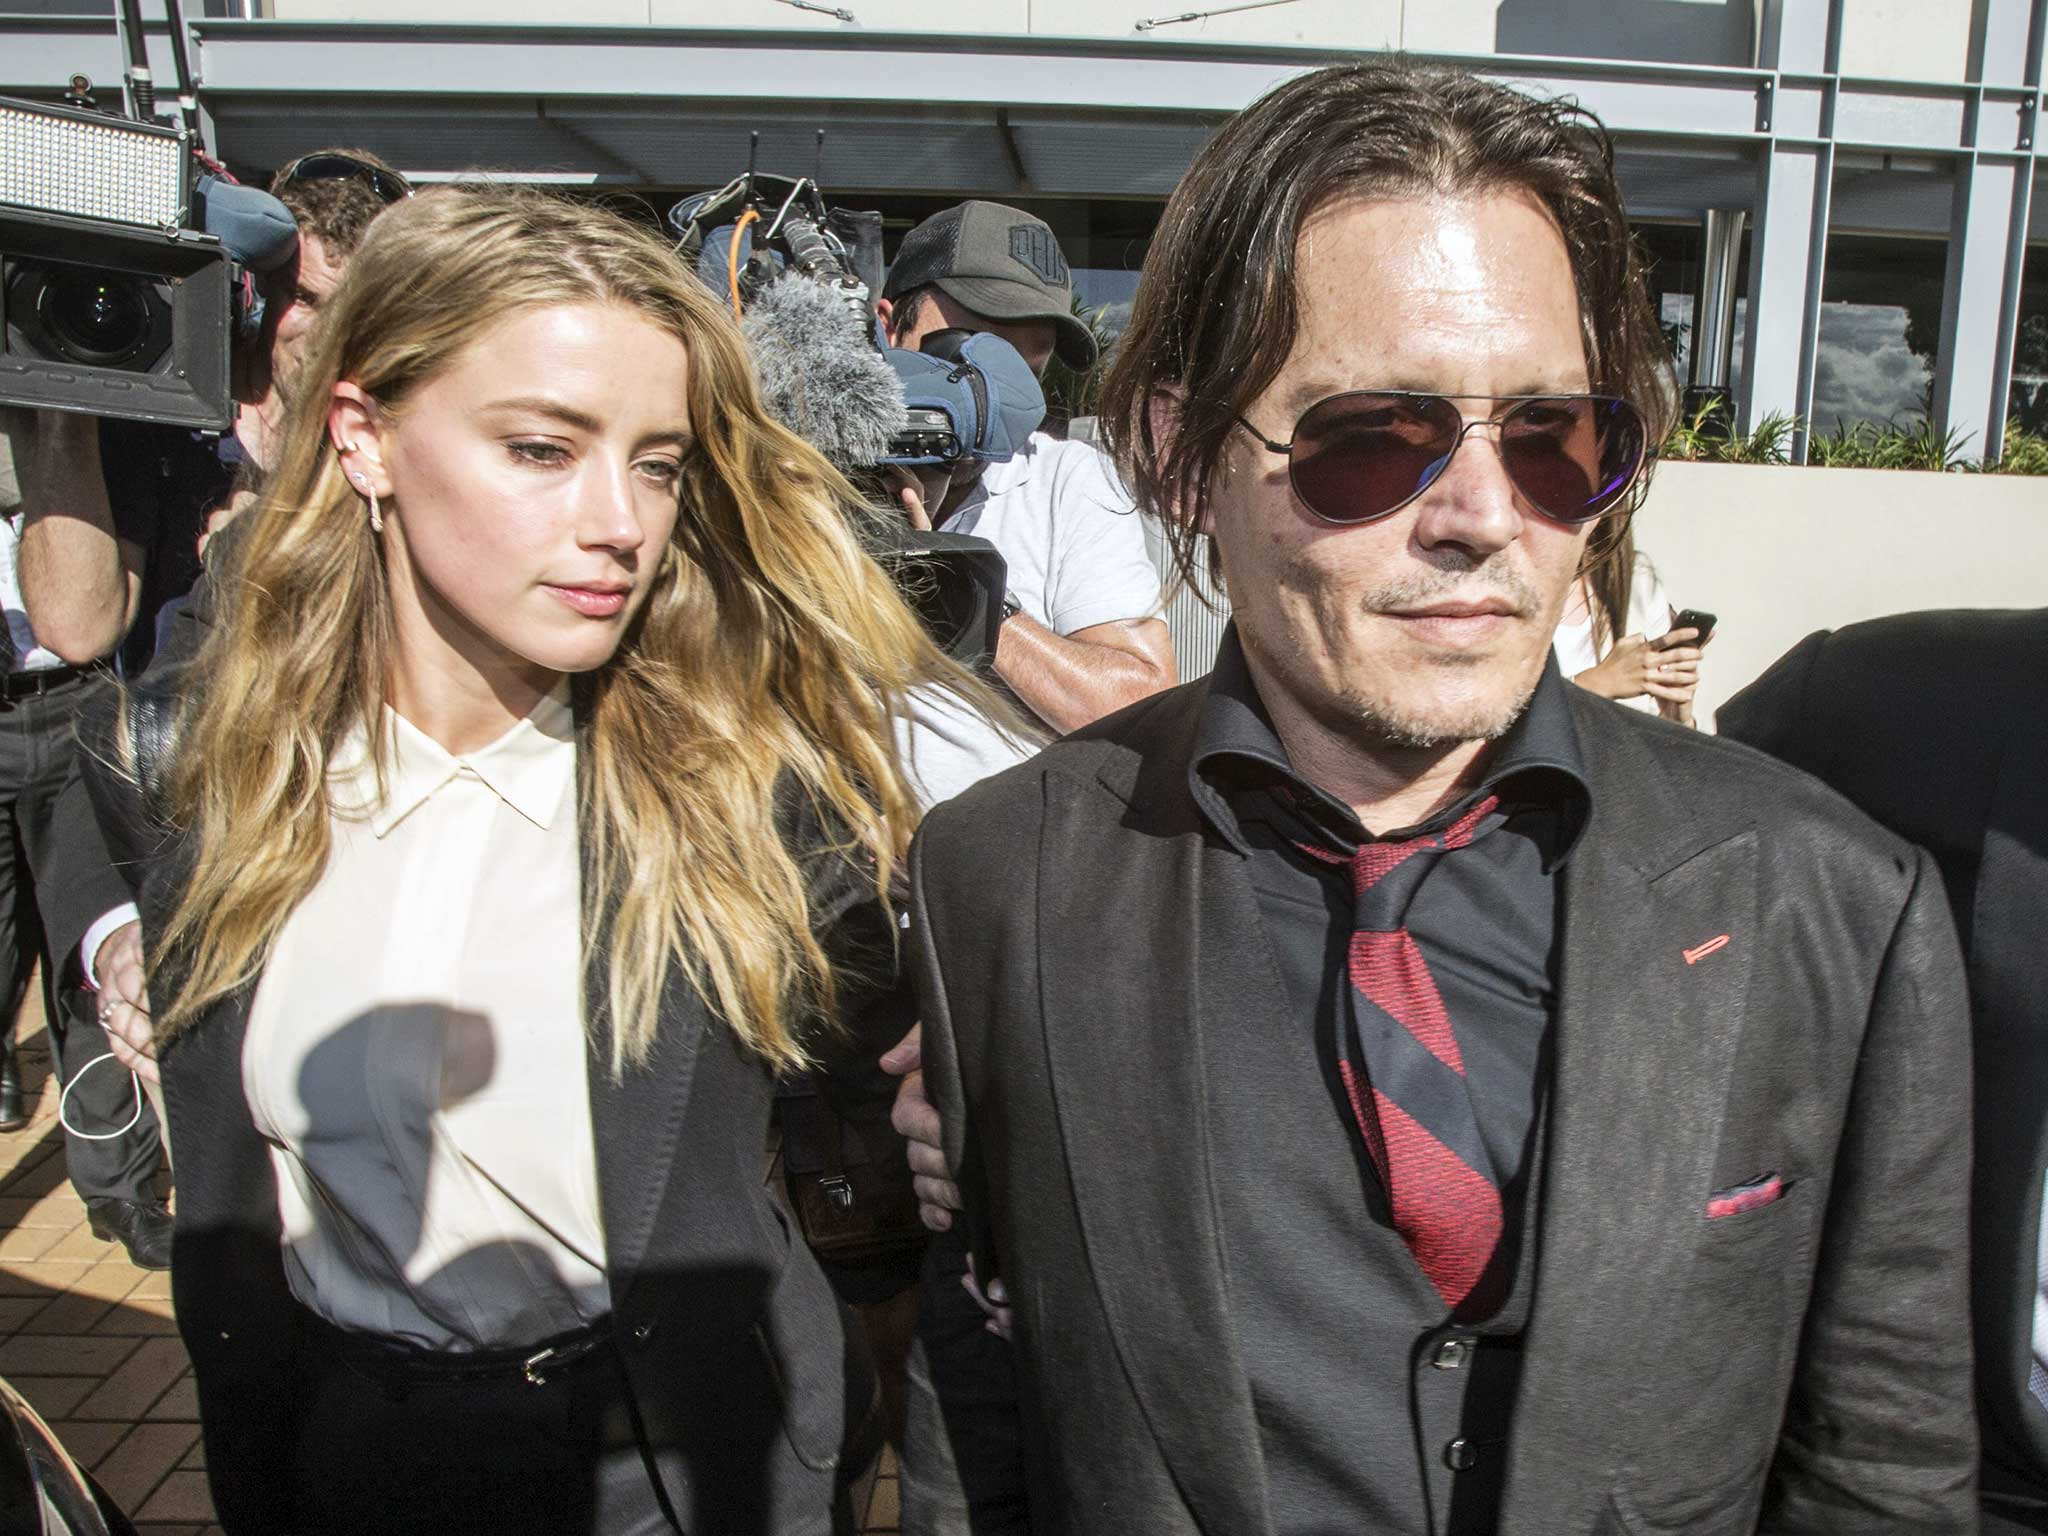 johnny depp absolutely still starring in sexual assault case johnny depp absolutely still starring in sexual assault case film despite amber heard violence accusations the